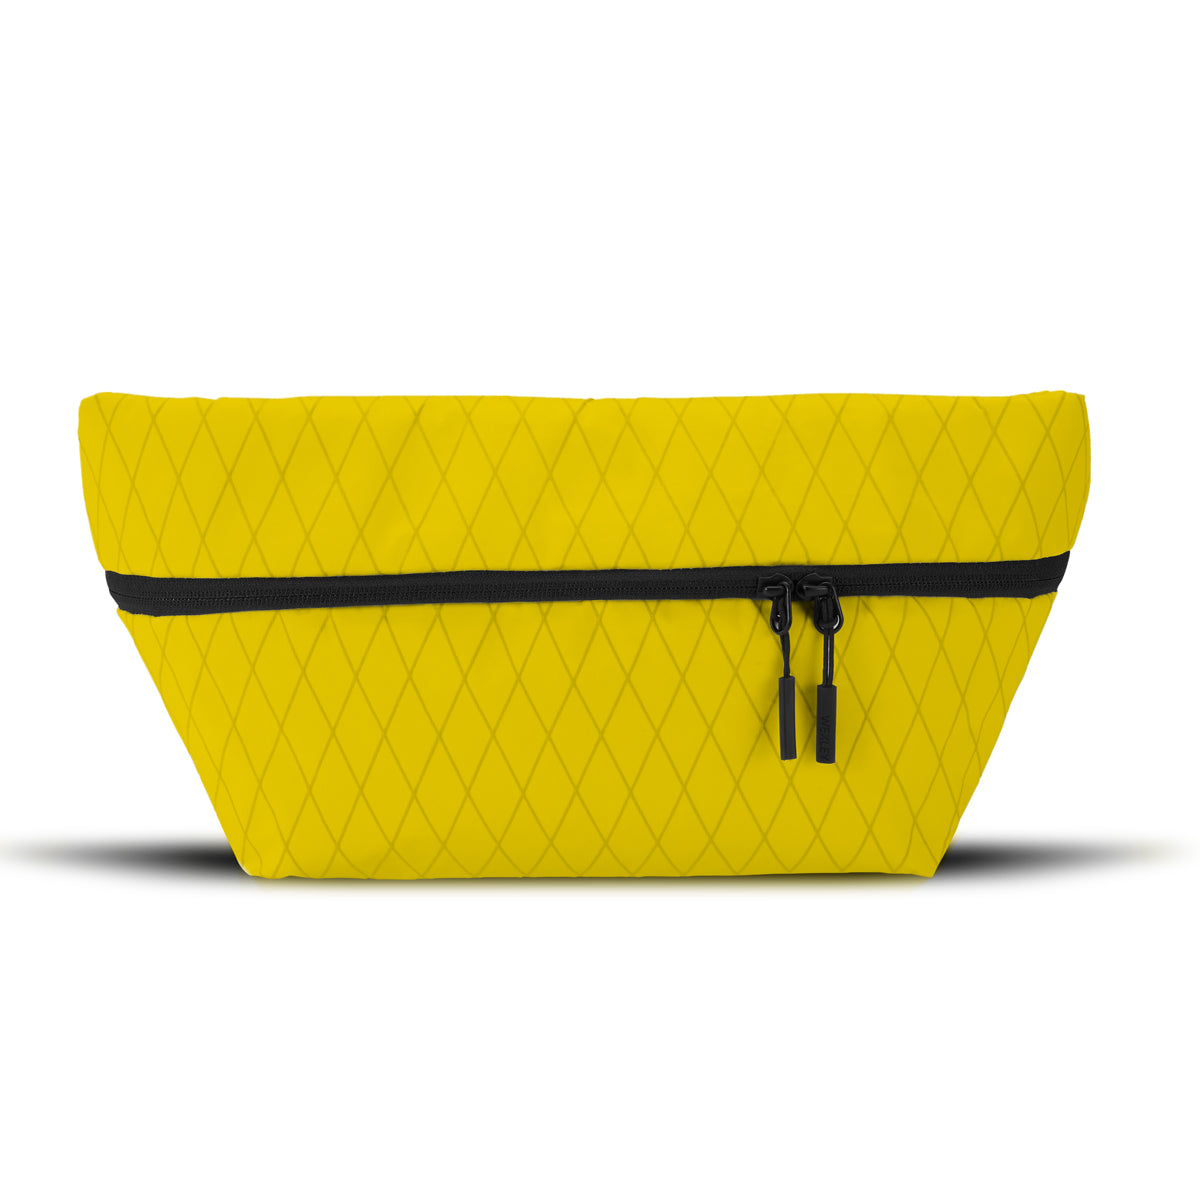 SLING BAG FULL X-PAC YELLOW